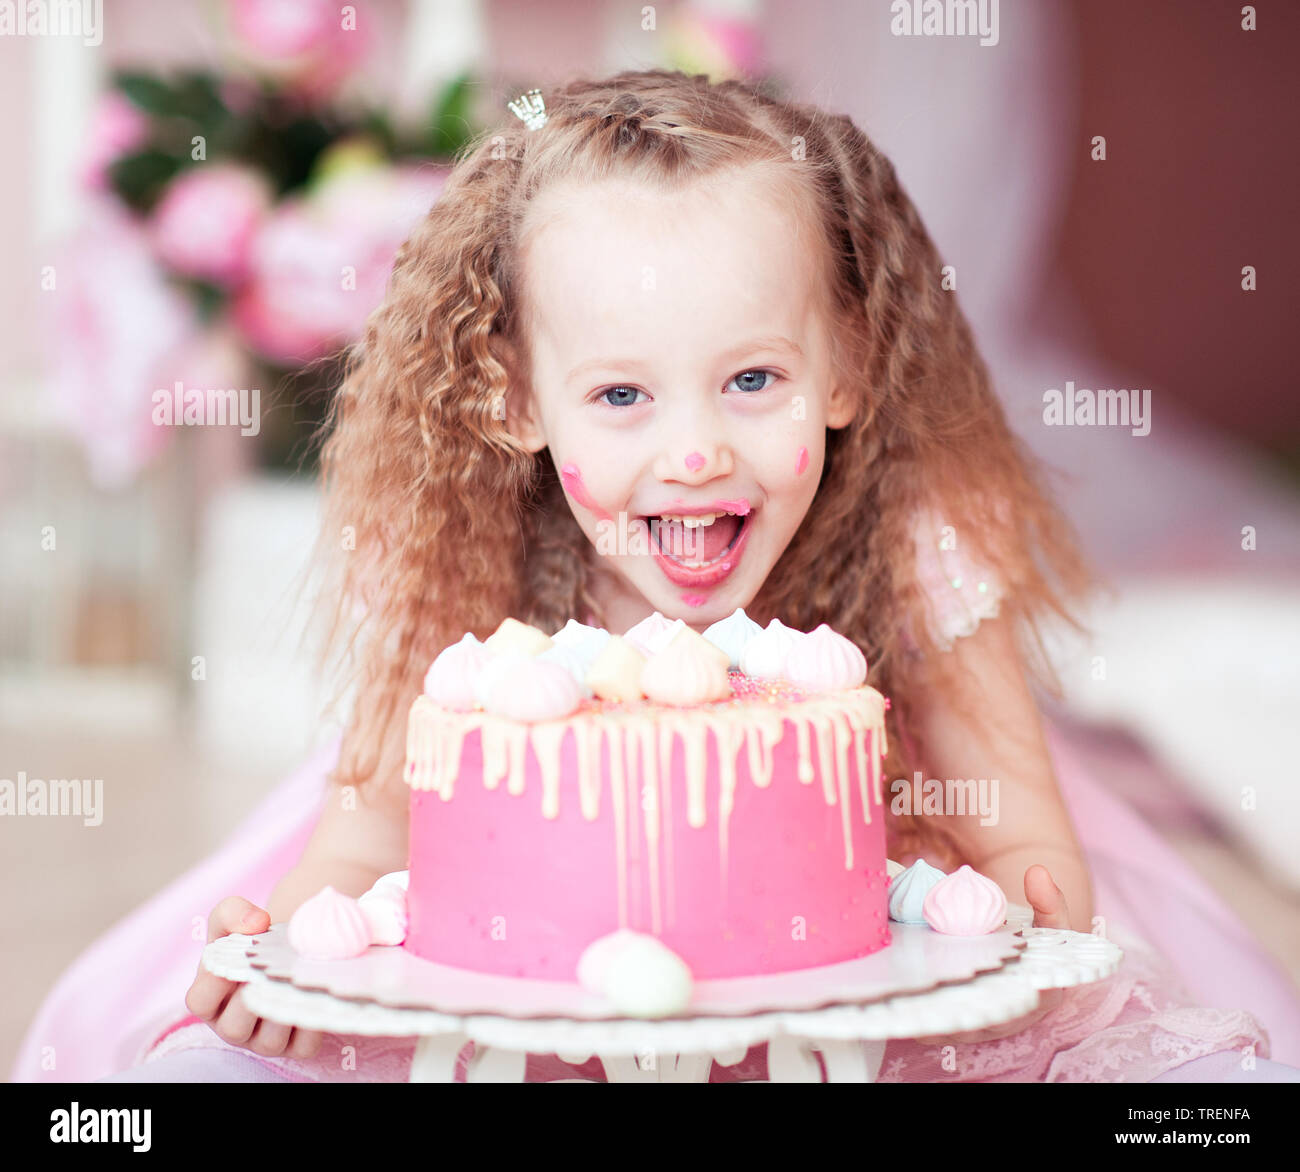 Swell Laughing Kid Girl Eating Birthday Cake With Open Mouth Closeup In Funny Birthday Cards Online Hendilapandamsfinfo